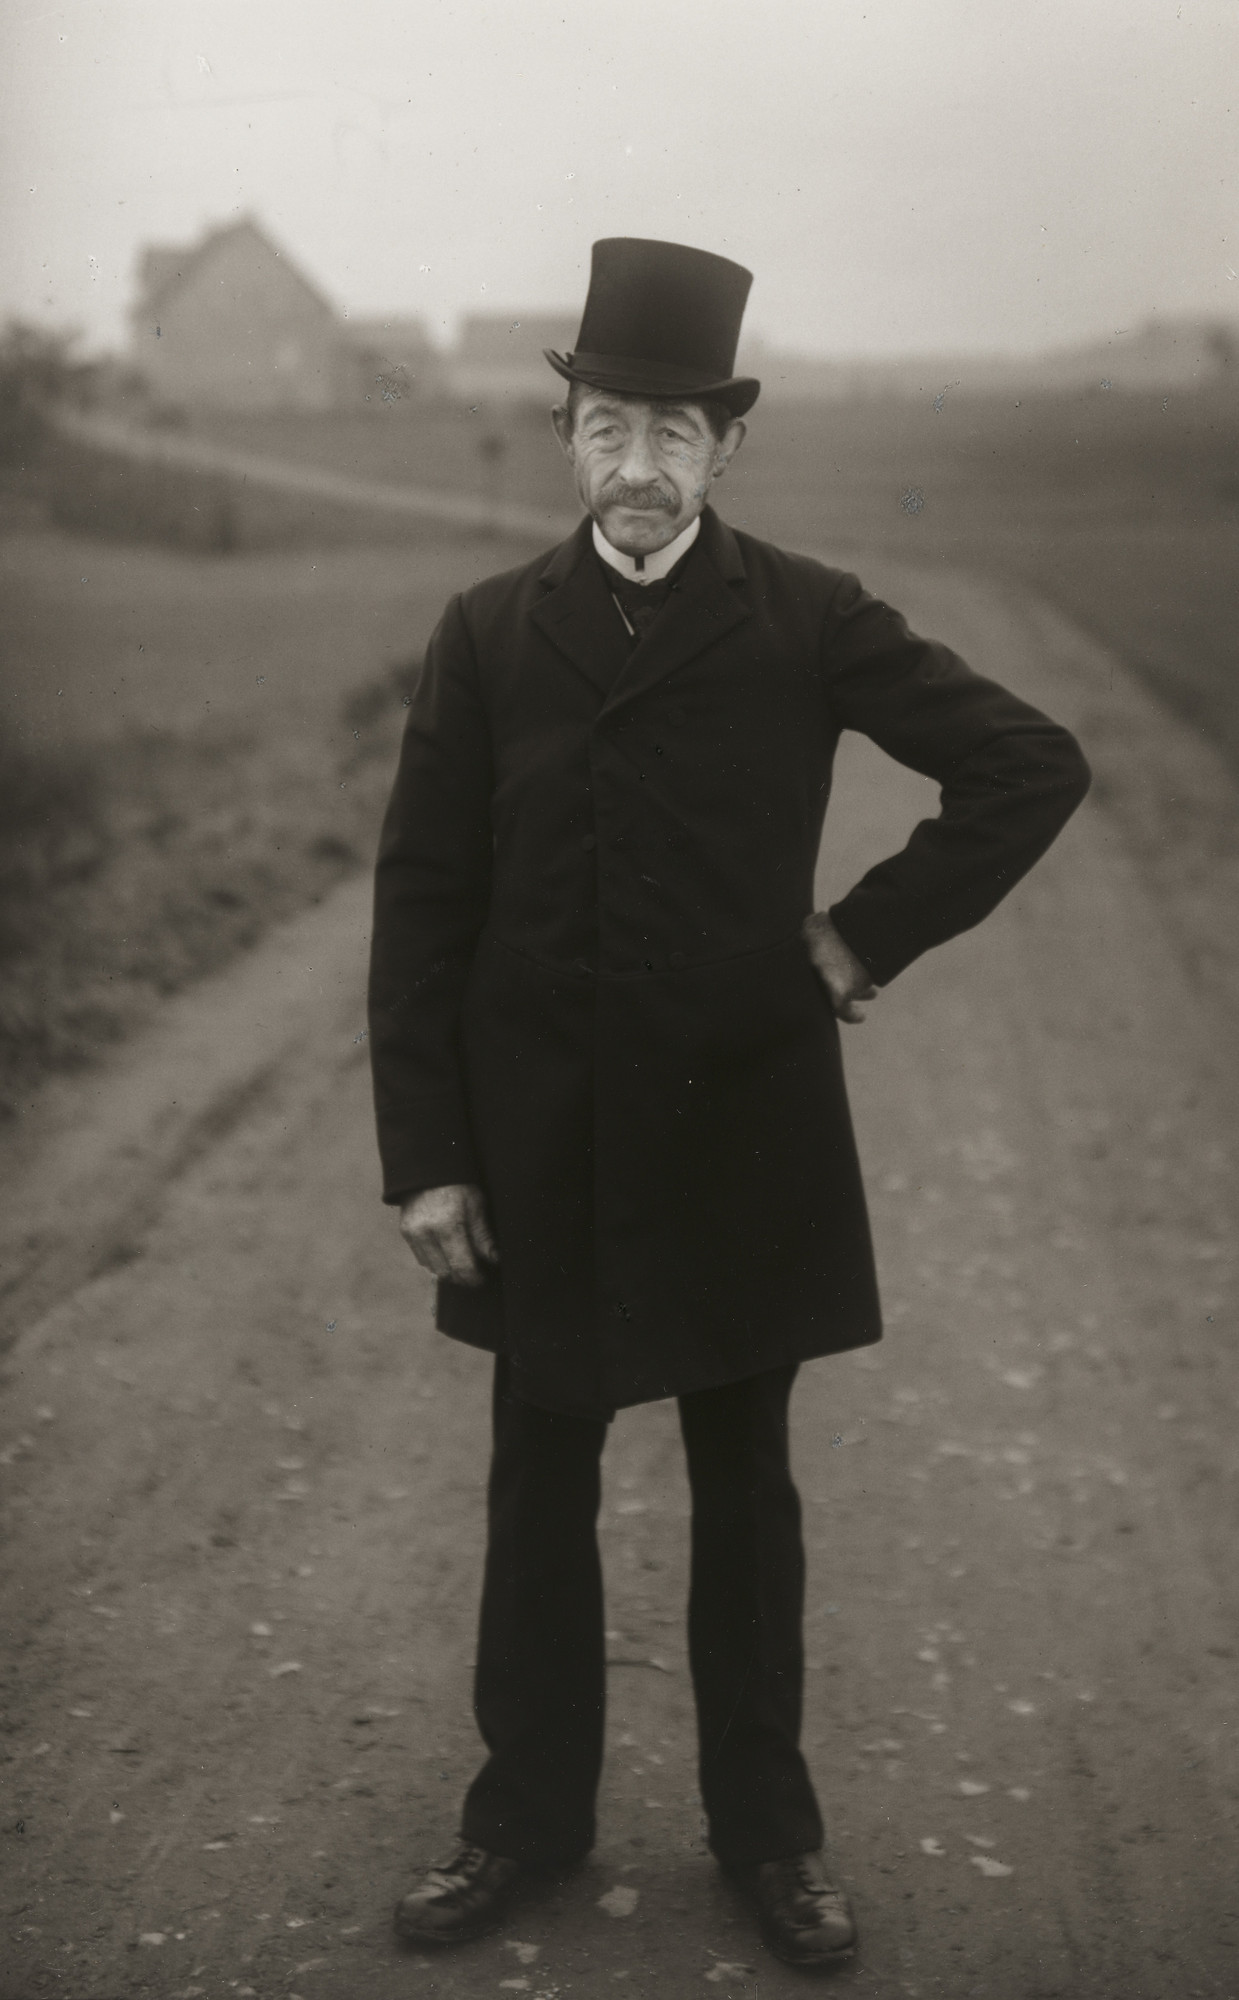 August Sander. Farmer on his Way to Church. 1925-26